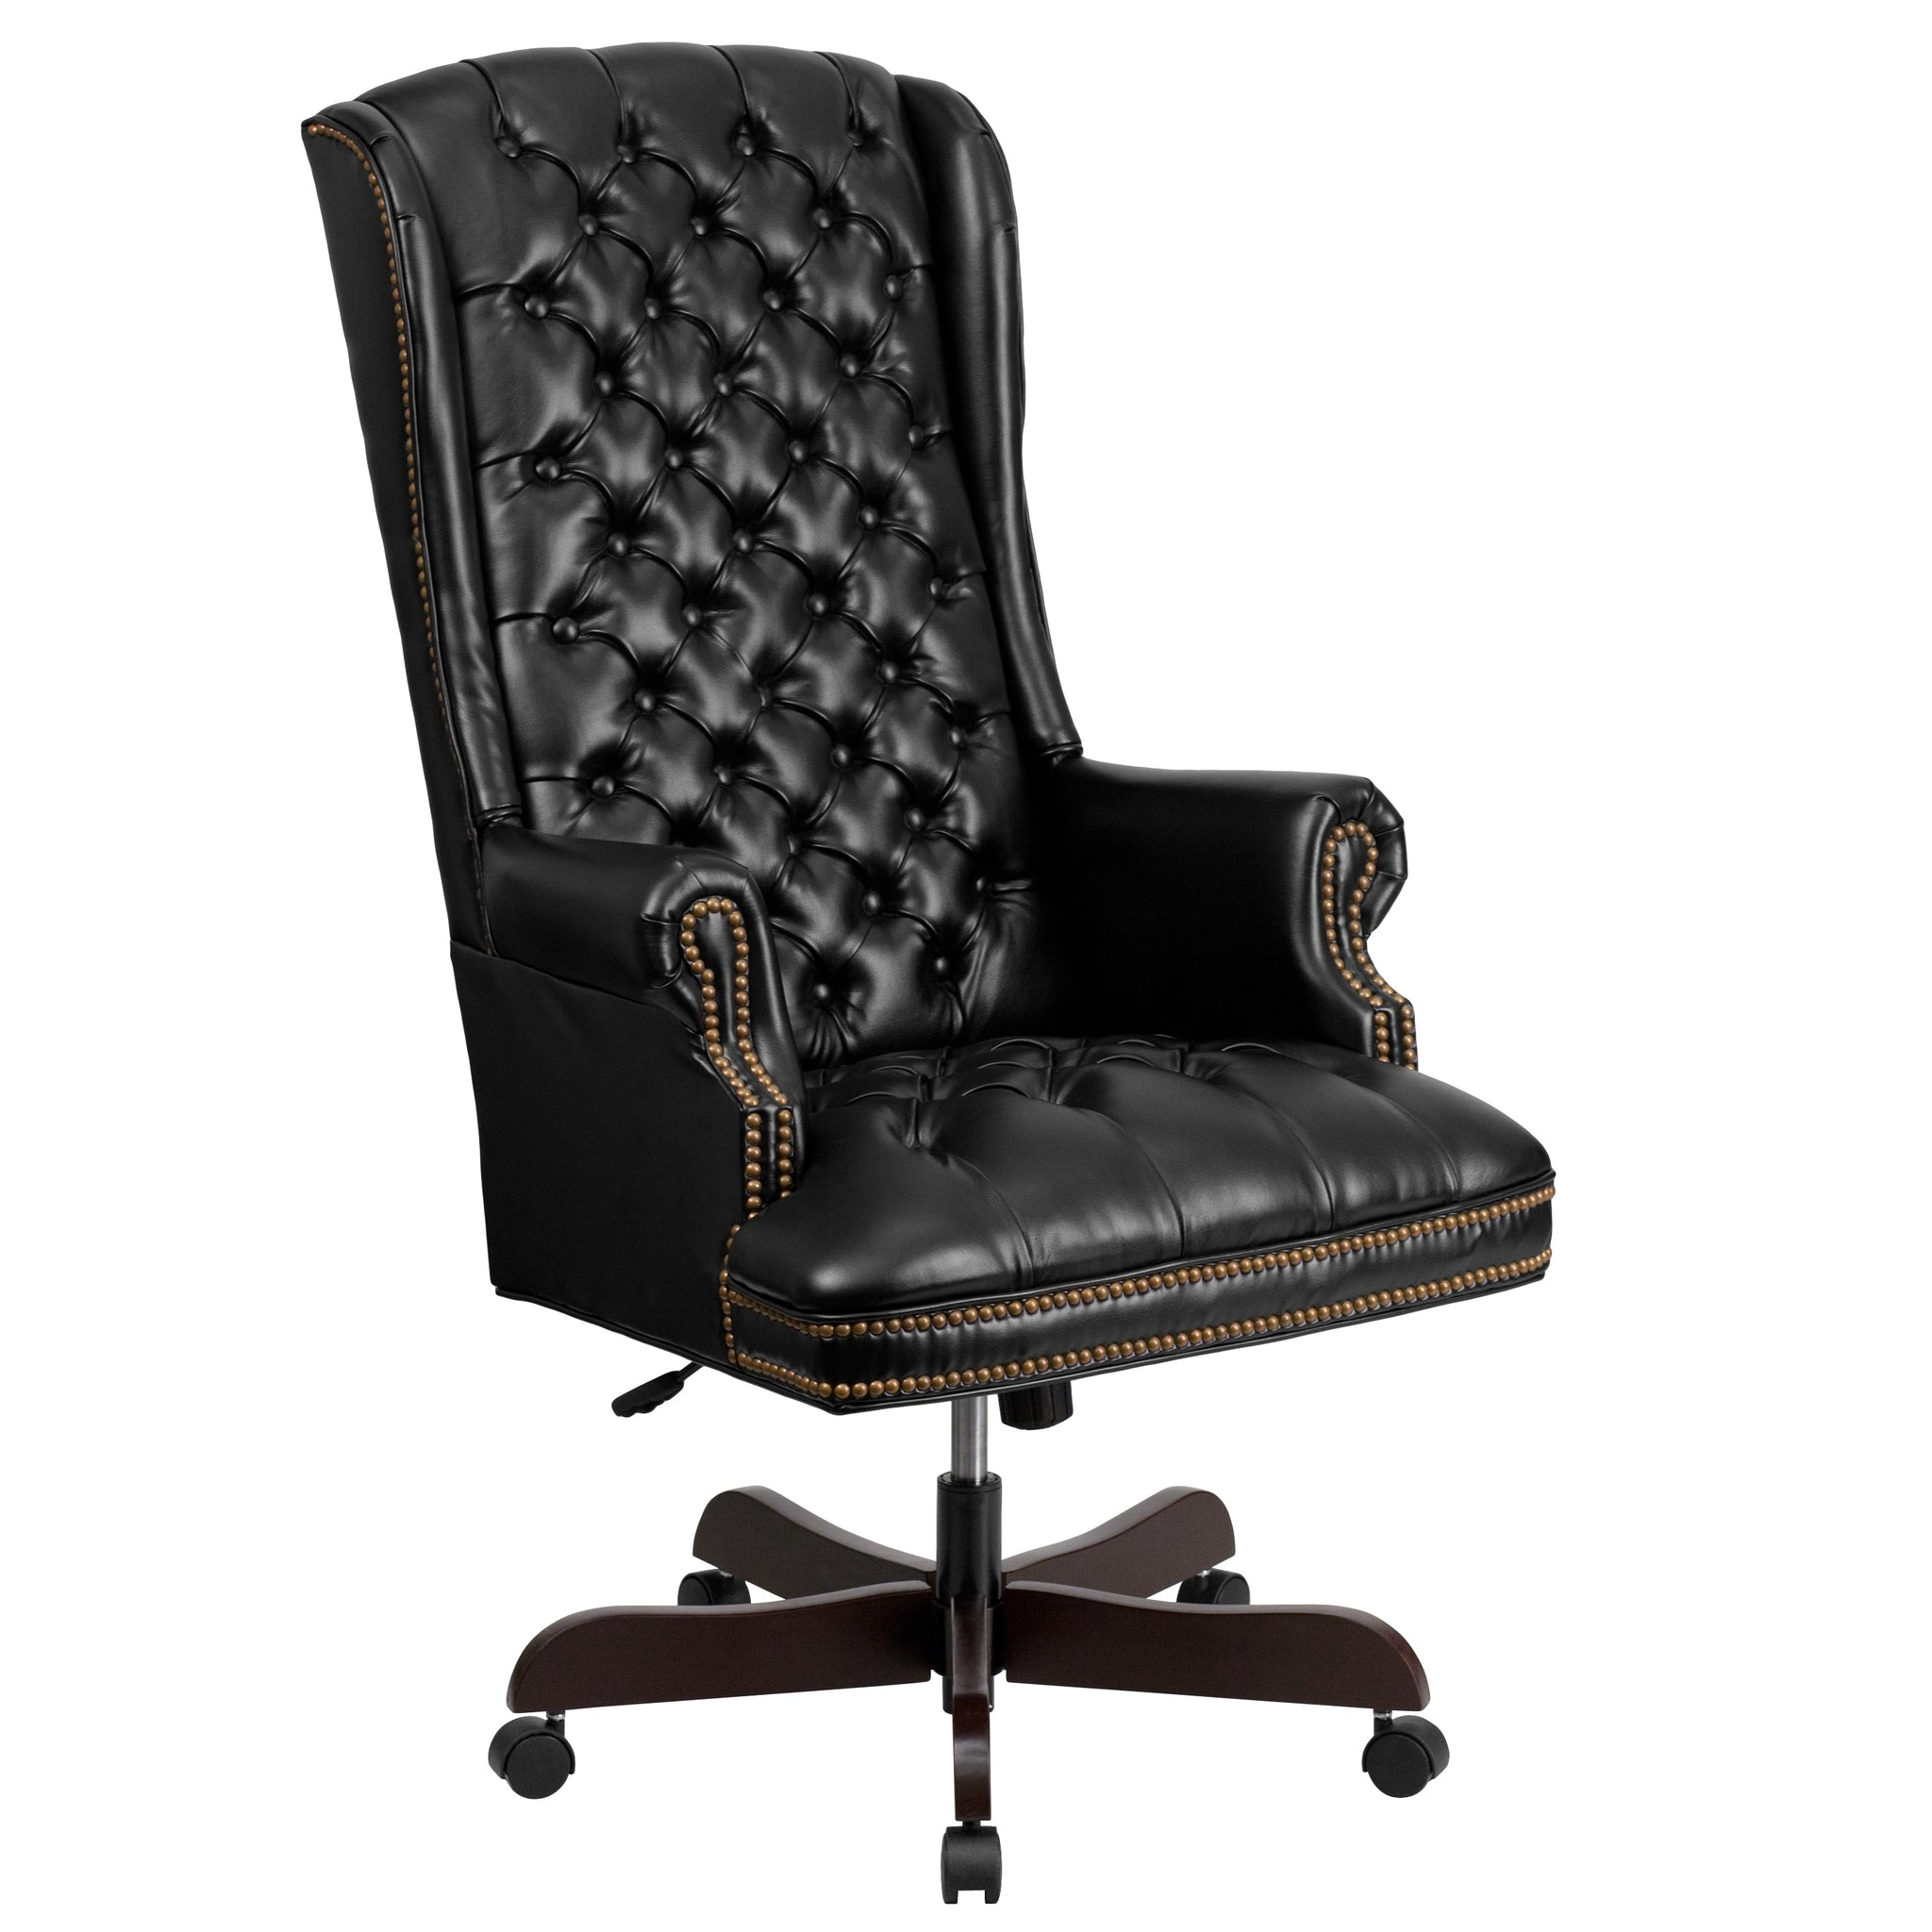 High-Back Traditionally Tufted Leather Executive Office Chair